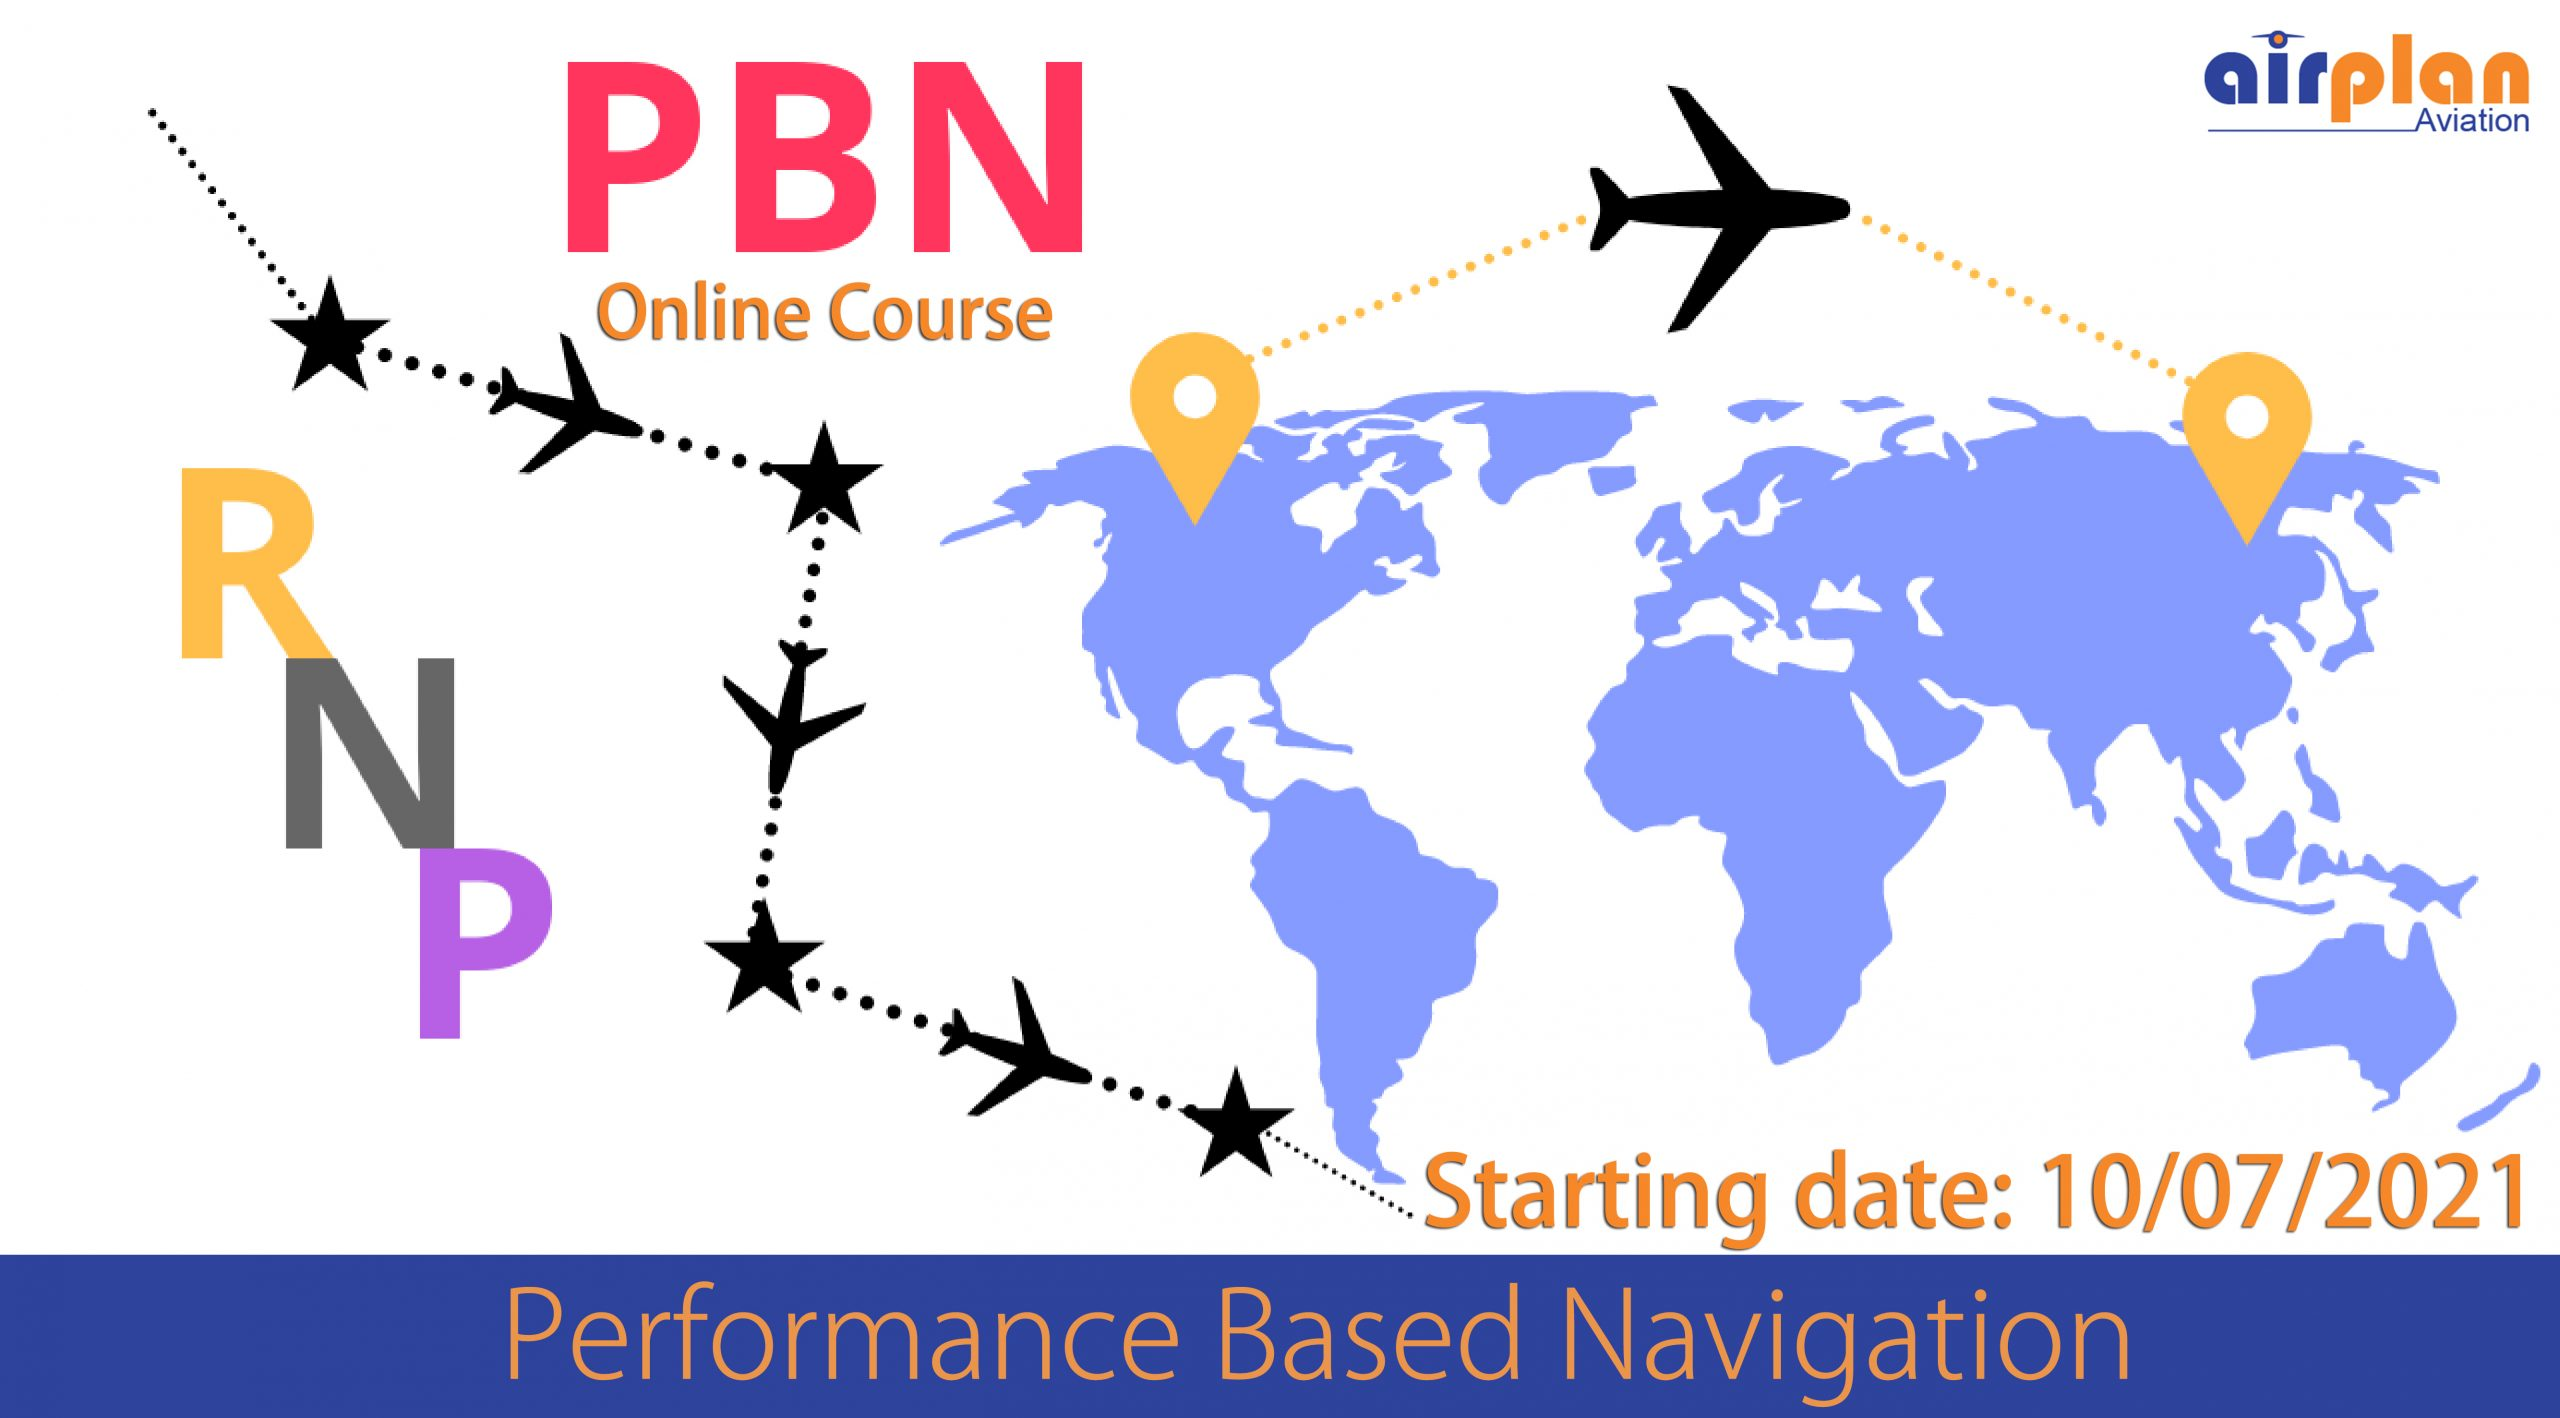 New PBN Online Course on July 2021